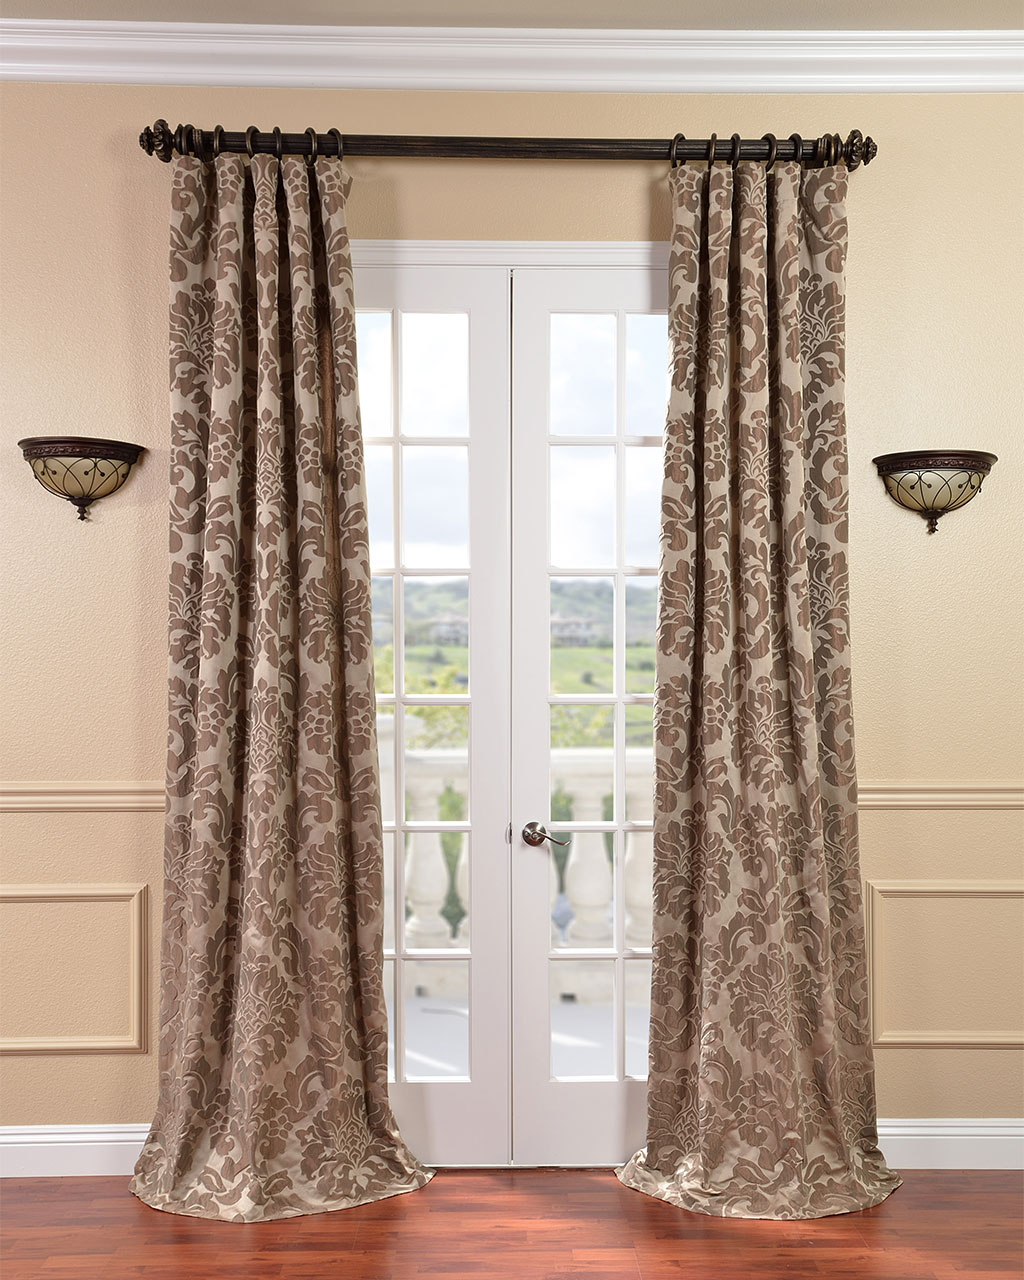 Lace and curtains the best window treatment for french for Wall to wall curtain